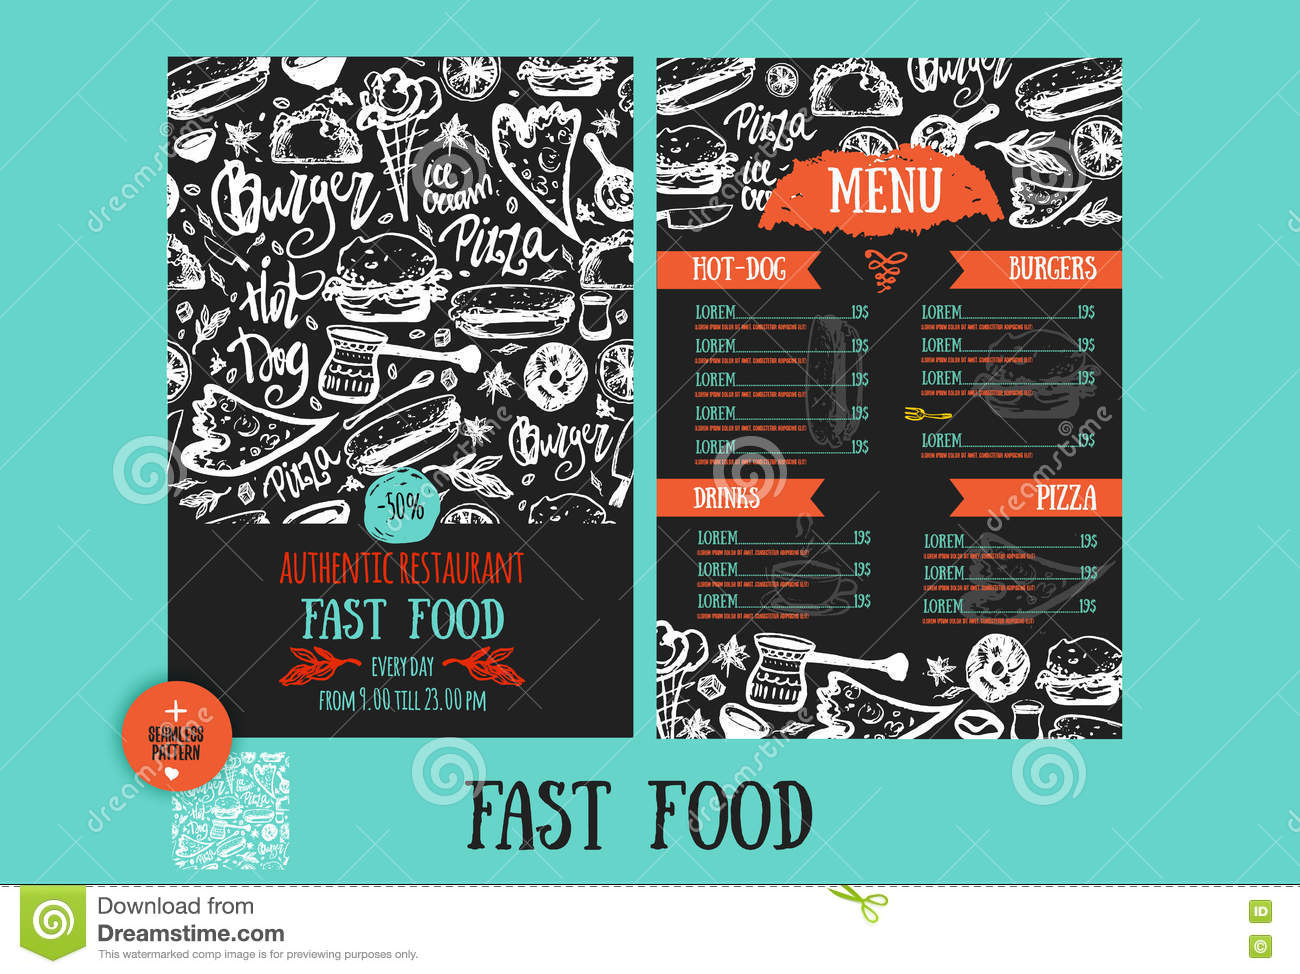 Fast Food Menu Design Template With Hand Drawn Vector Illustration Cover Of Restaurant Menu With Burger Pizza Hot Dog Stock Vector Illustration Of Drink Breakfast 81388304